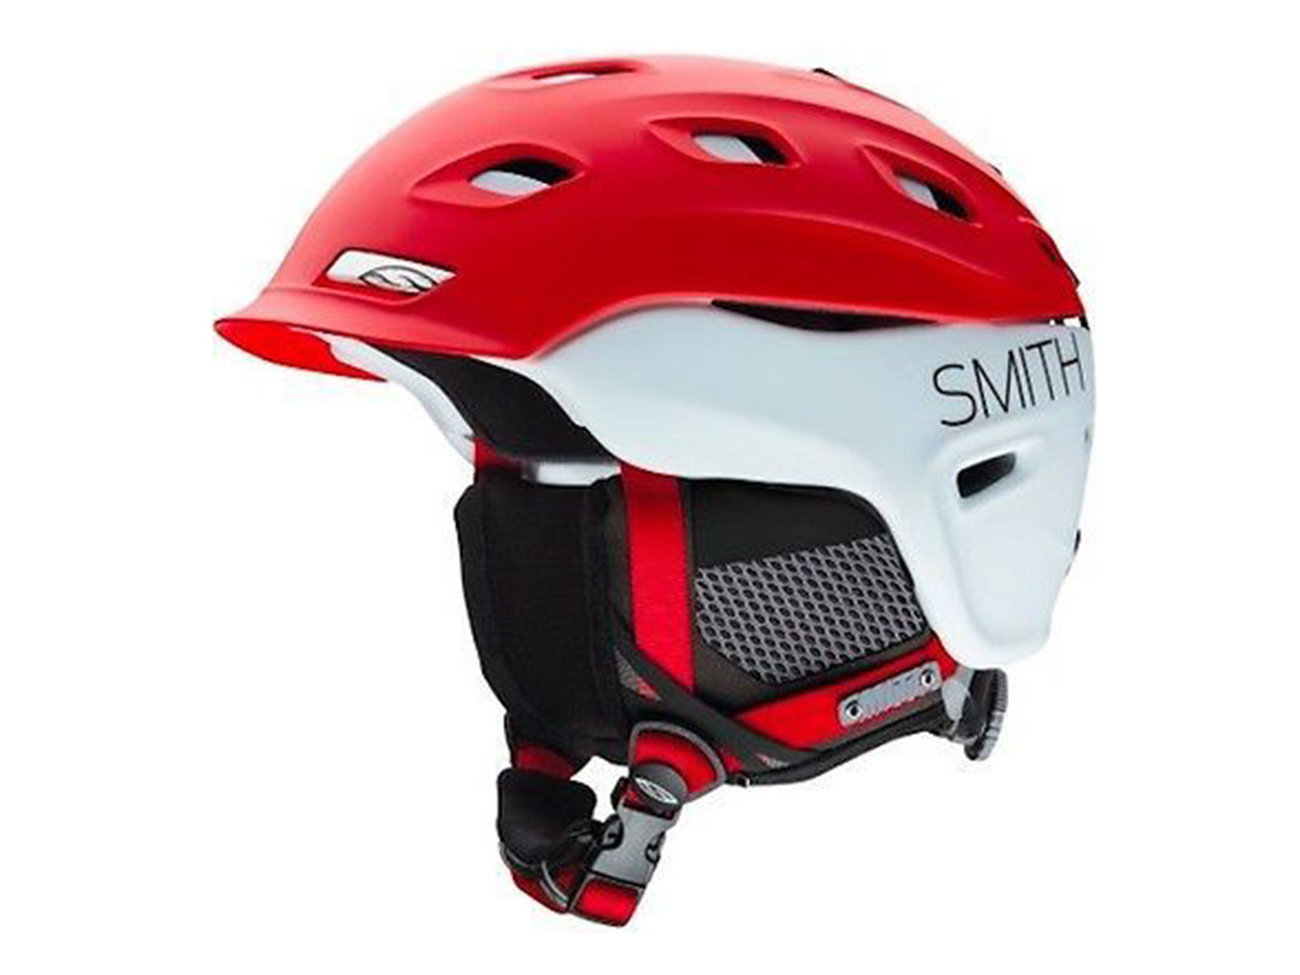 SMITH-Vantage-Snow-Helmet-ADVENTURE-GUIDE1115.jpg